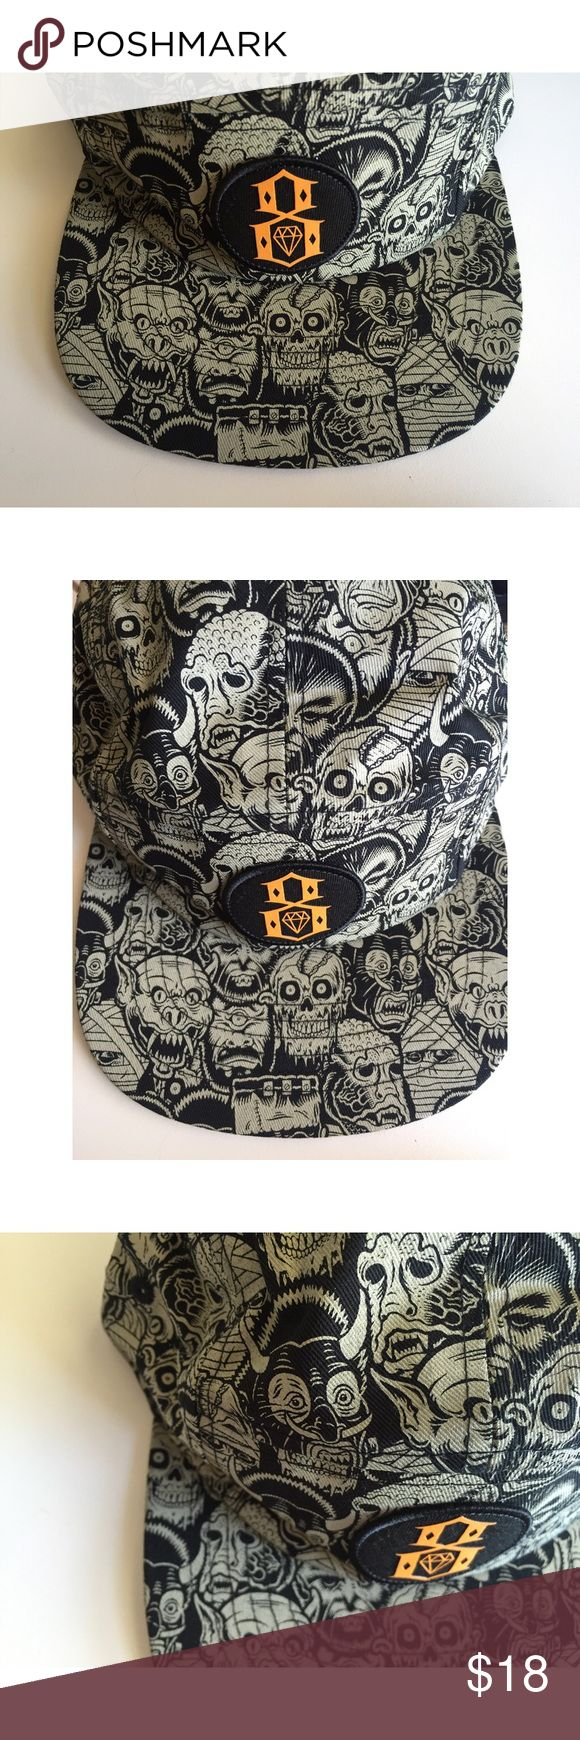 Brand New Rebel8 Hellaween Capsule 5-Panel Hat Brand new hat designed by Rebel8. 5-panel camper hat construction with adjustable plastic clasp closure strap back. Did not come with tags but item is new. Part of the Hellaween Capsule. Rebel 8 Accessories Hats